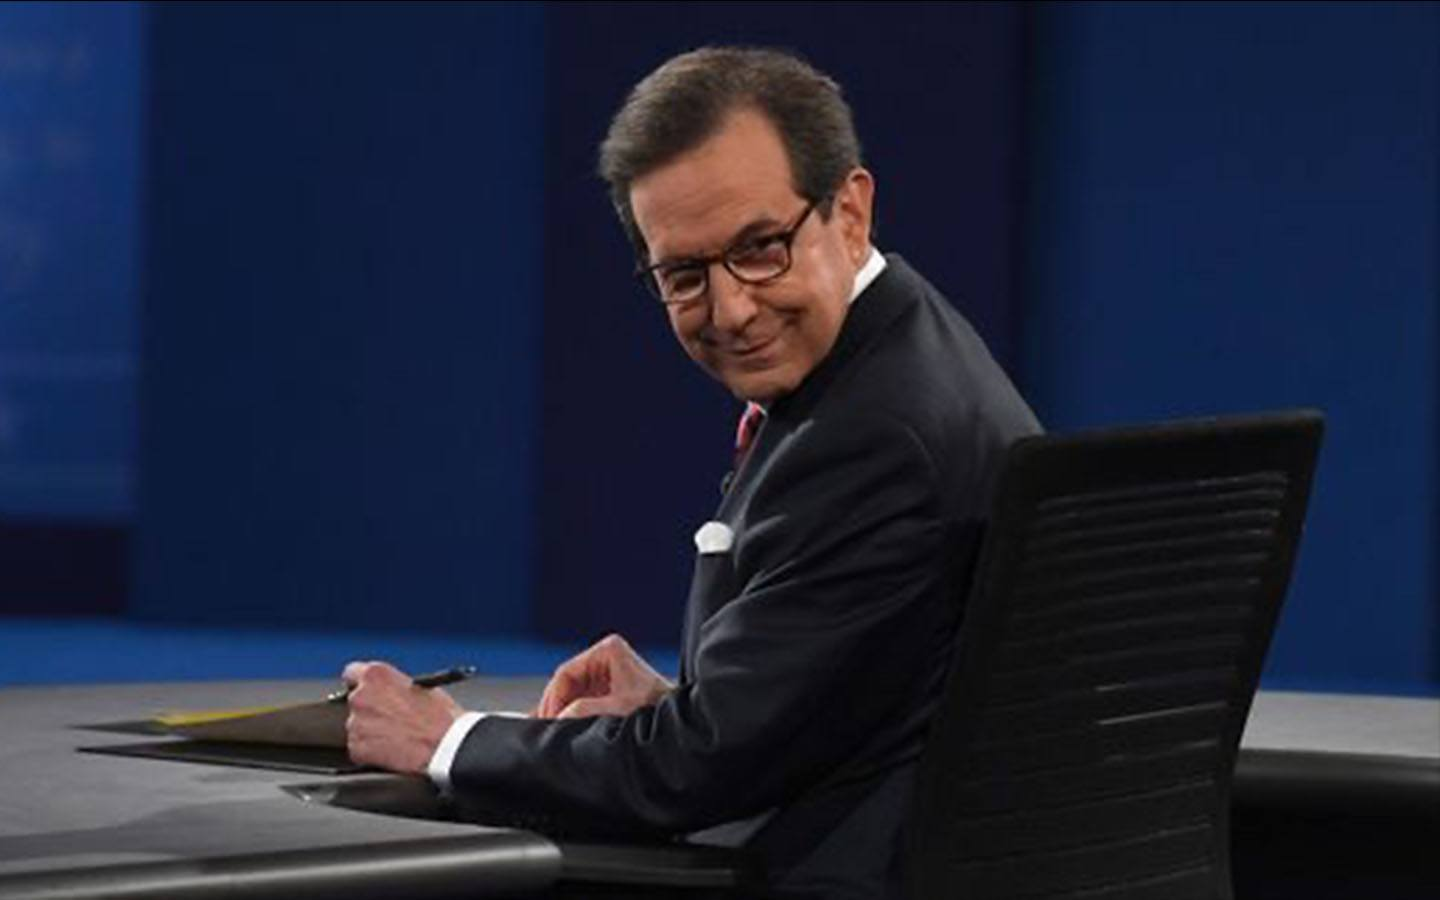 'Chris Wallace is a National Disgrace' – Twitter Explodes Over Wallace's Despicable Performance at the Debate